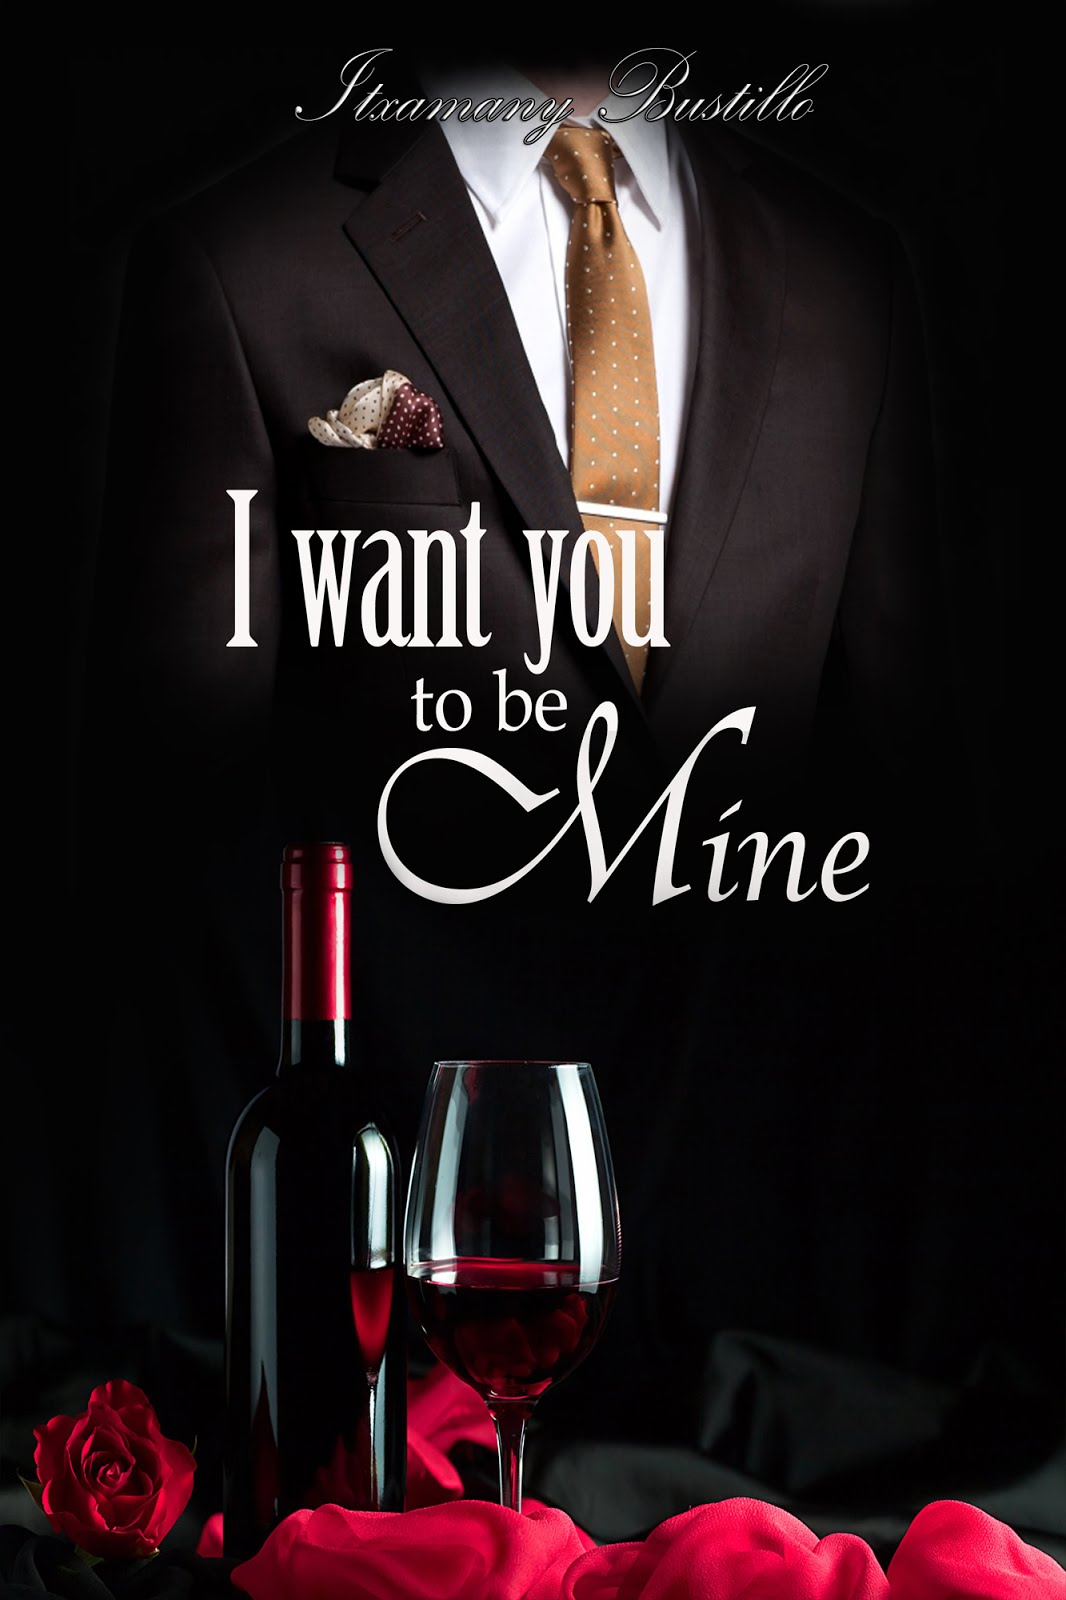 I want you to be mine